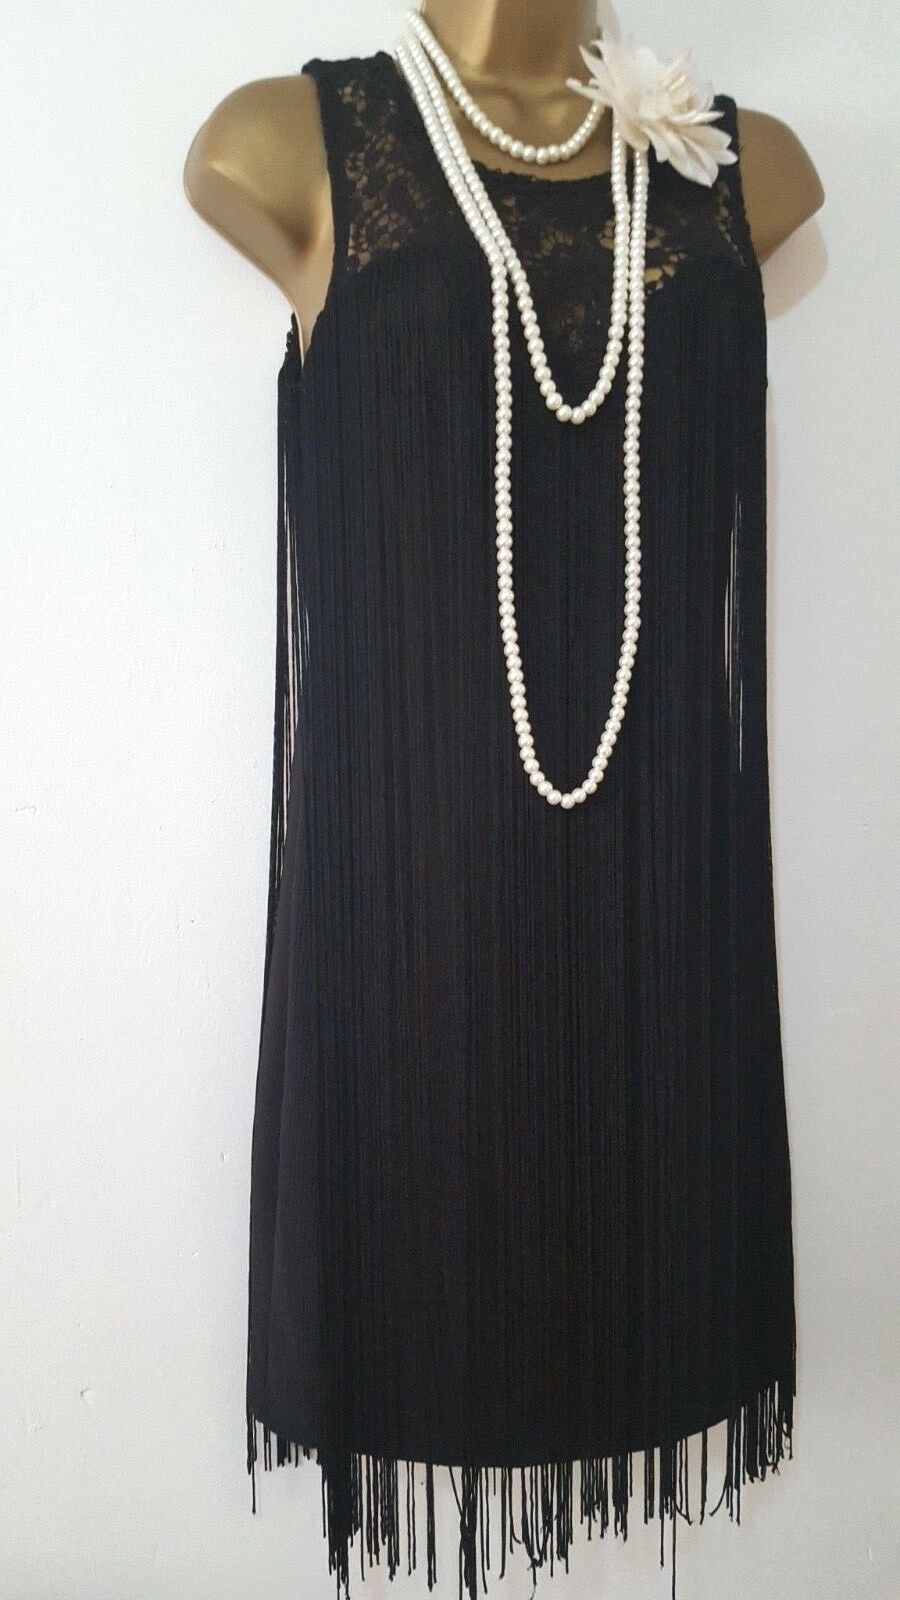 VINTAGE 20'S GATSBY FLAPPER CHARLESTON TASSEL DECO FRINGE DRESS UK10